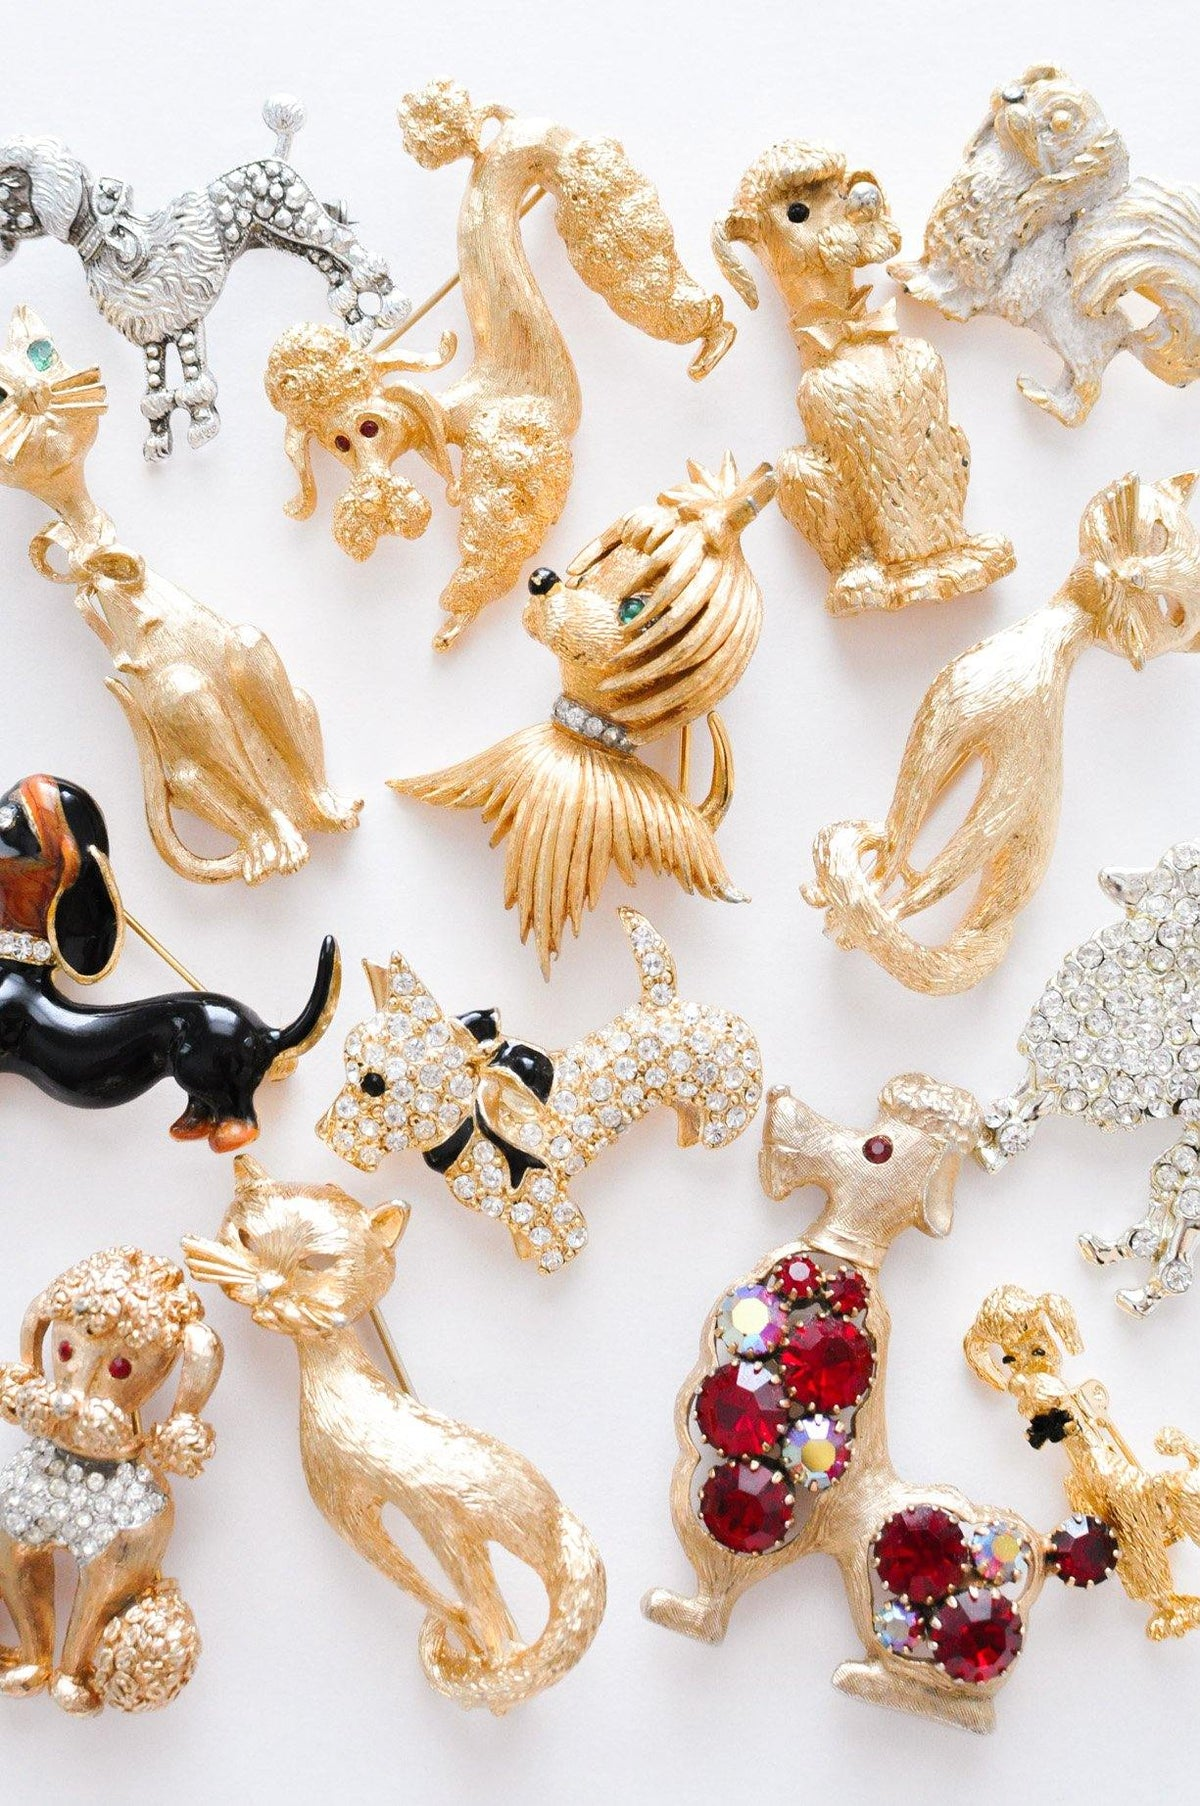 Vintage dog and cat animal brooches from Sweet & Spark.